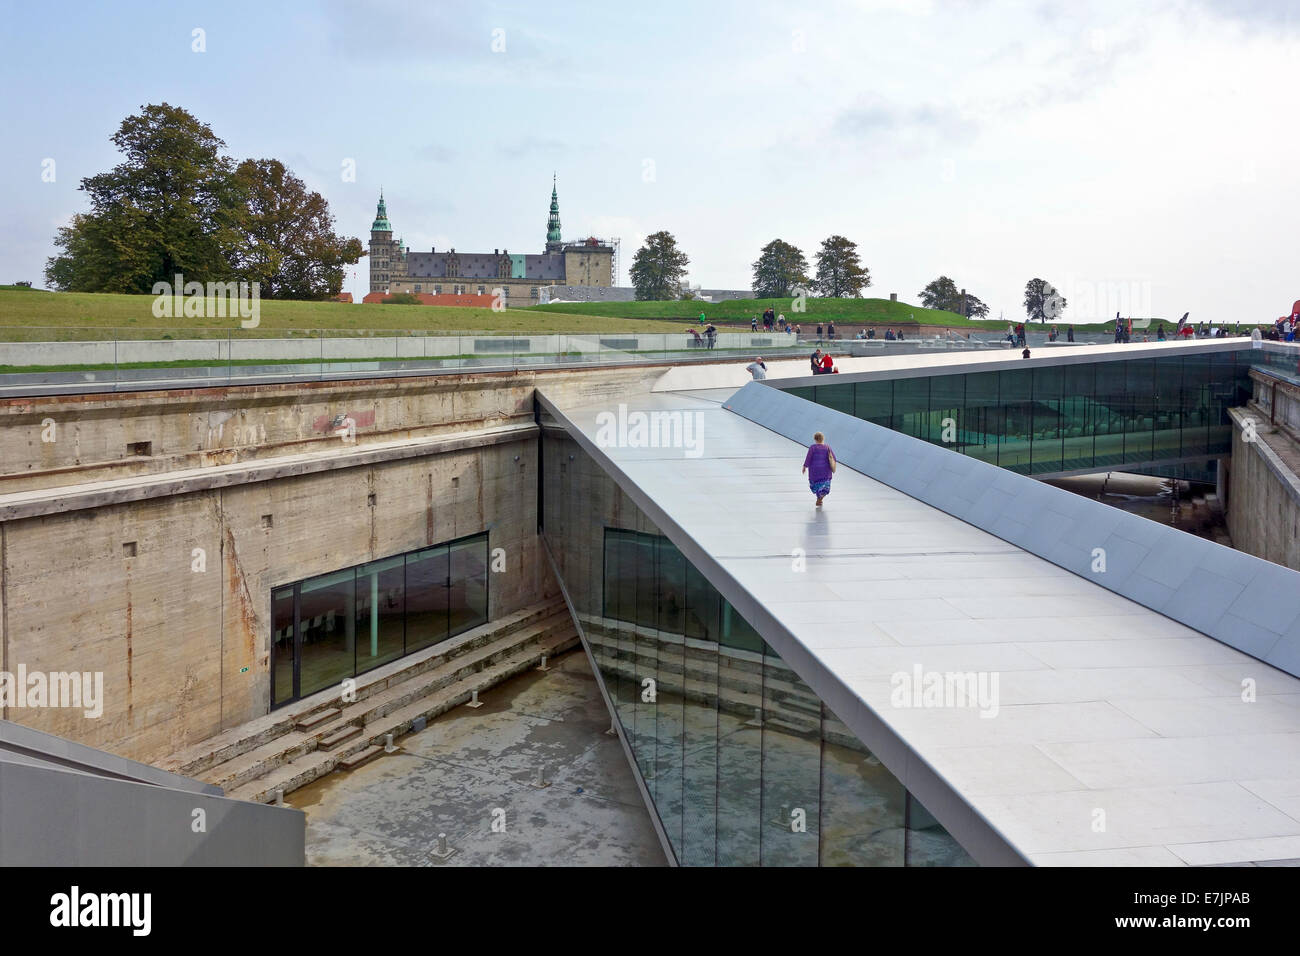 Maritime Museum of Denmark (Museet for Søfart) in the harbour Elsinore Denmark showing path leading down to - Stock Image